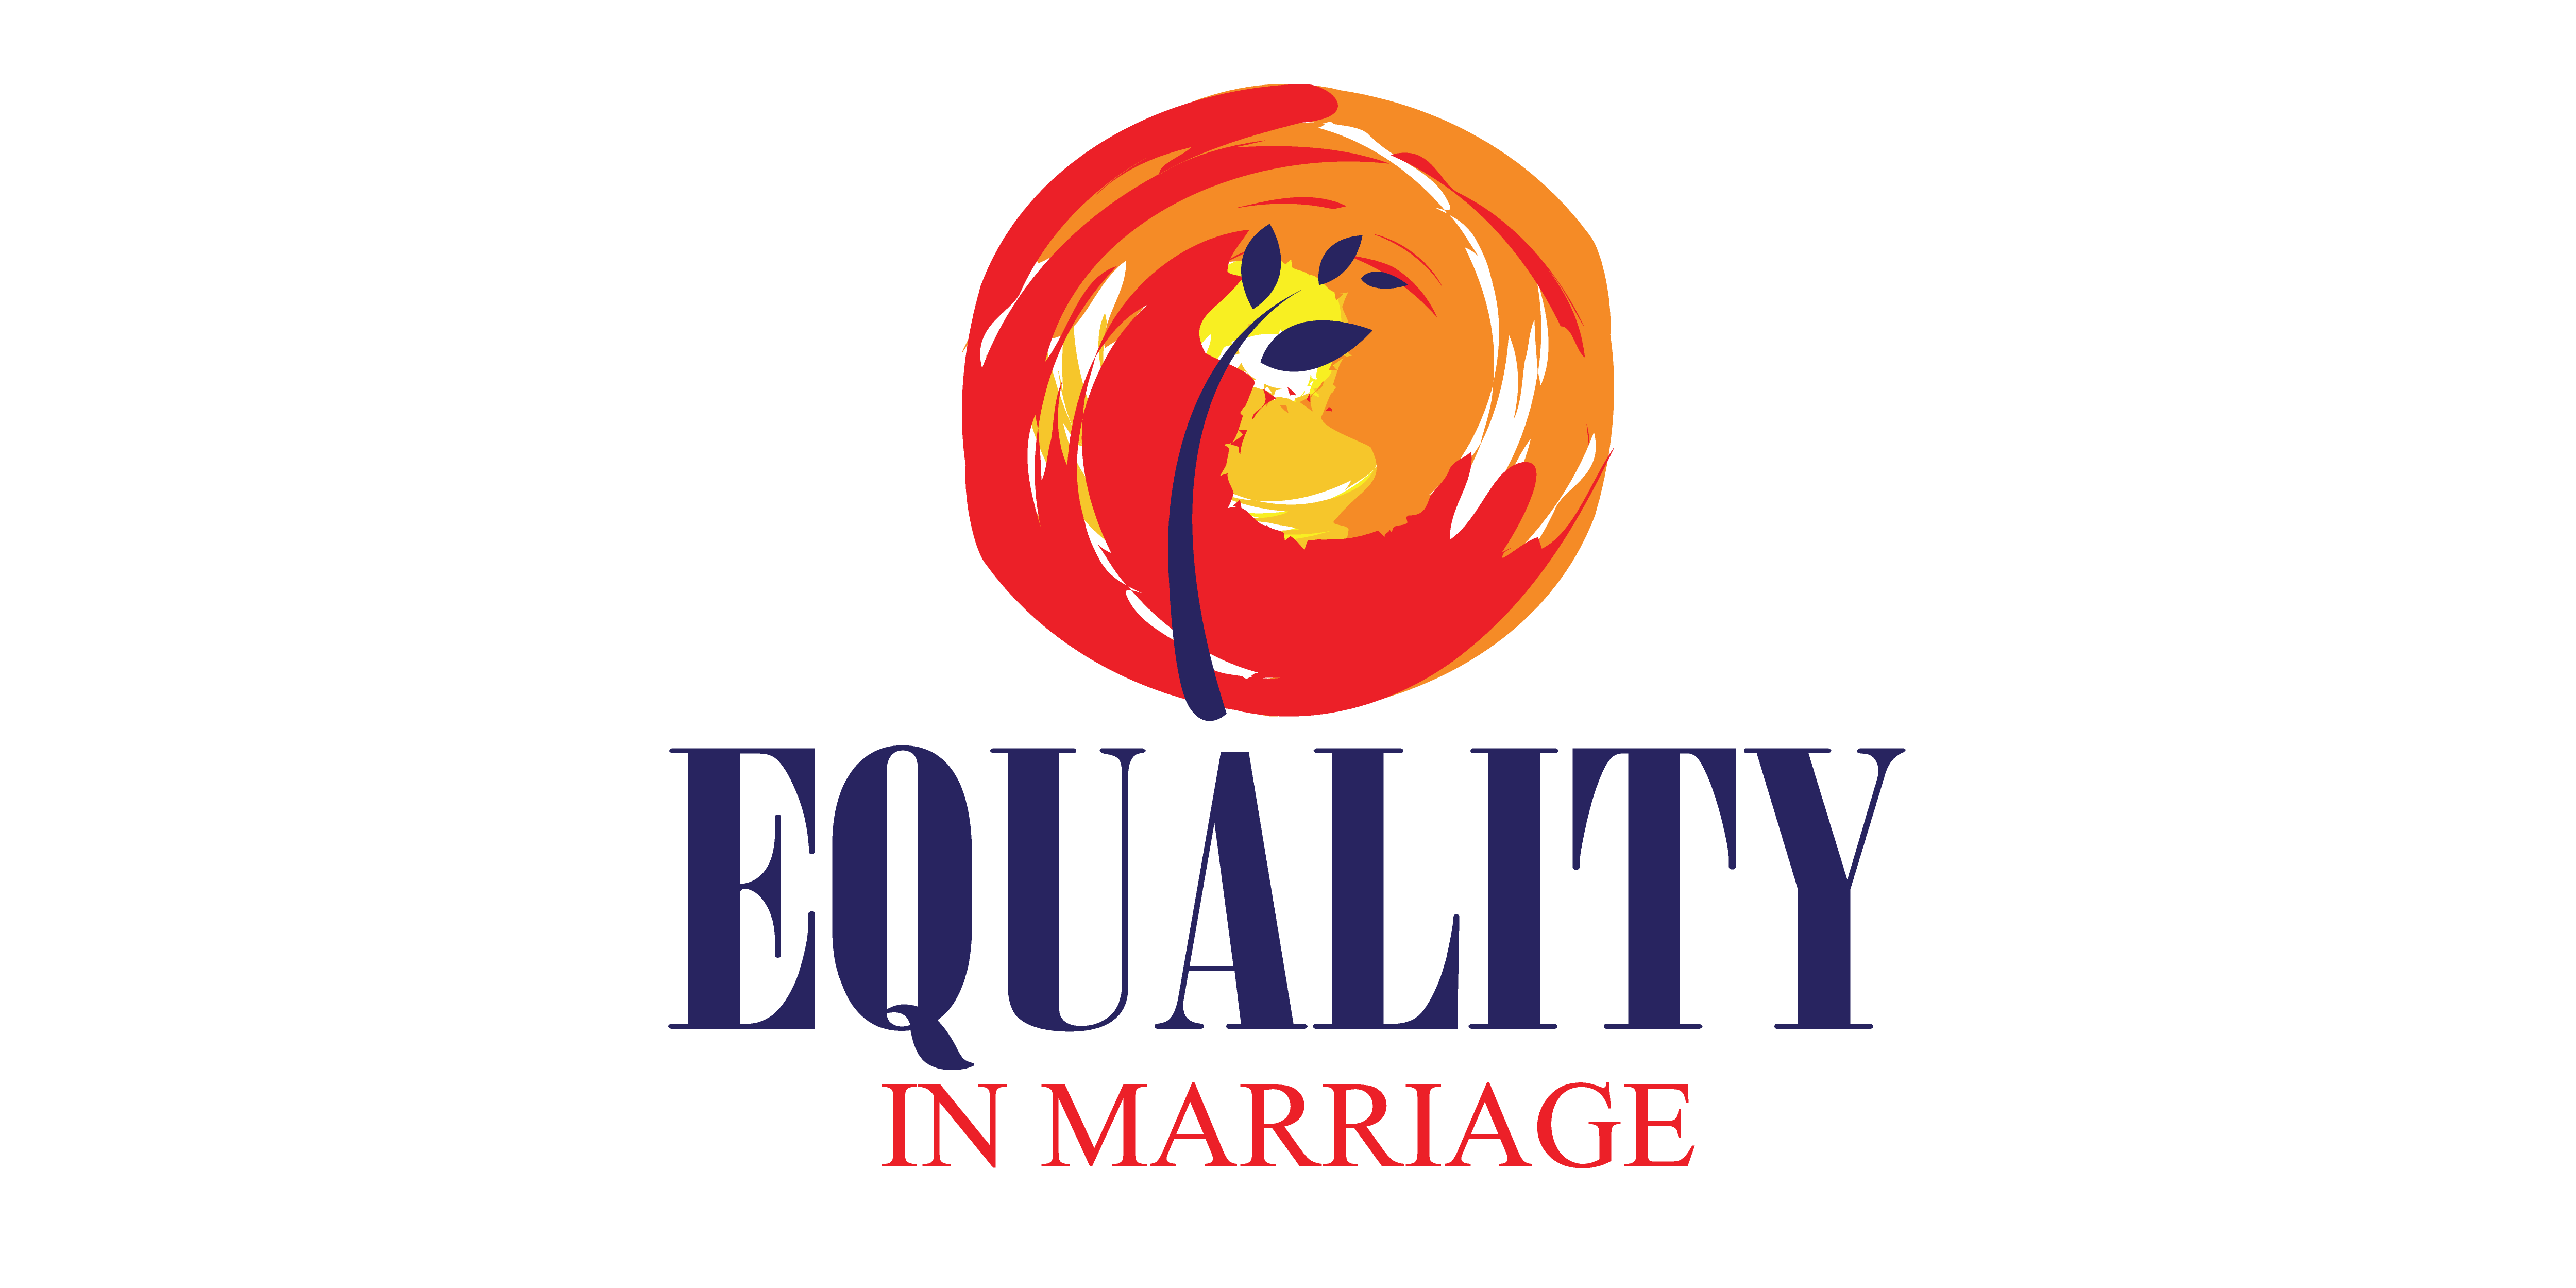 Equality In Marriage